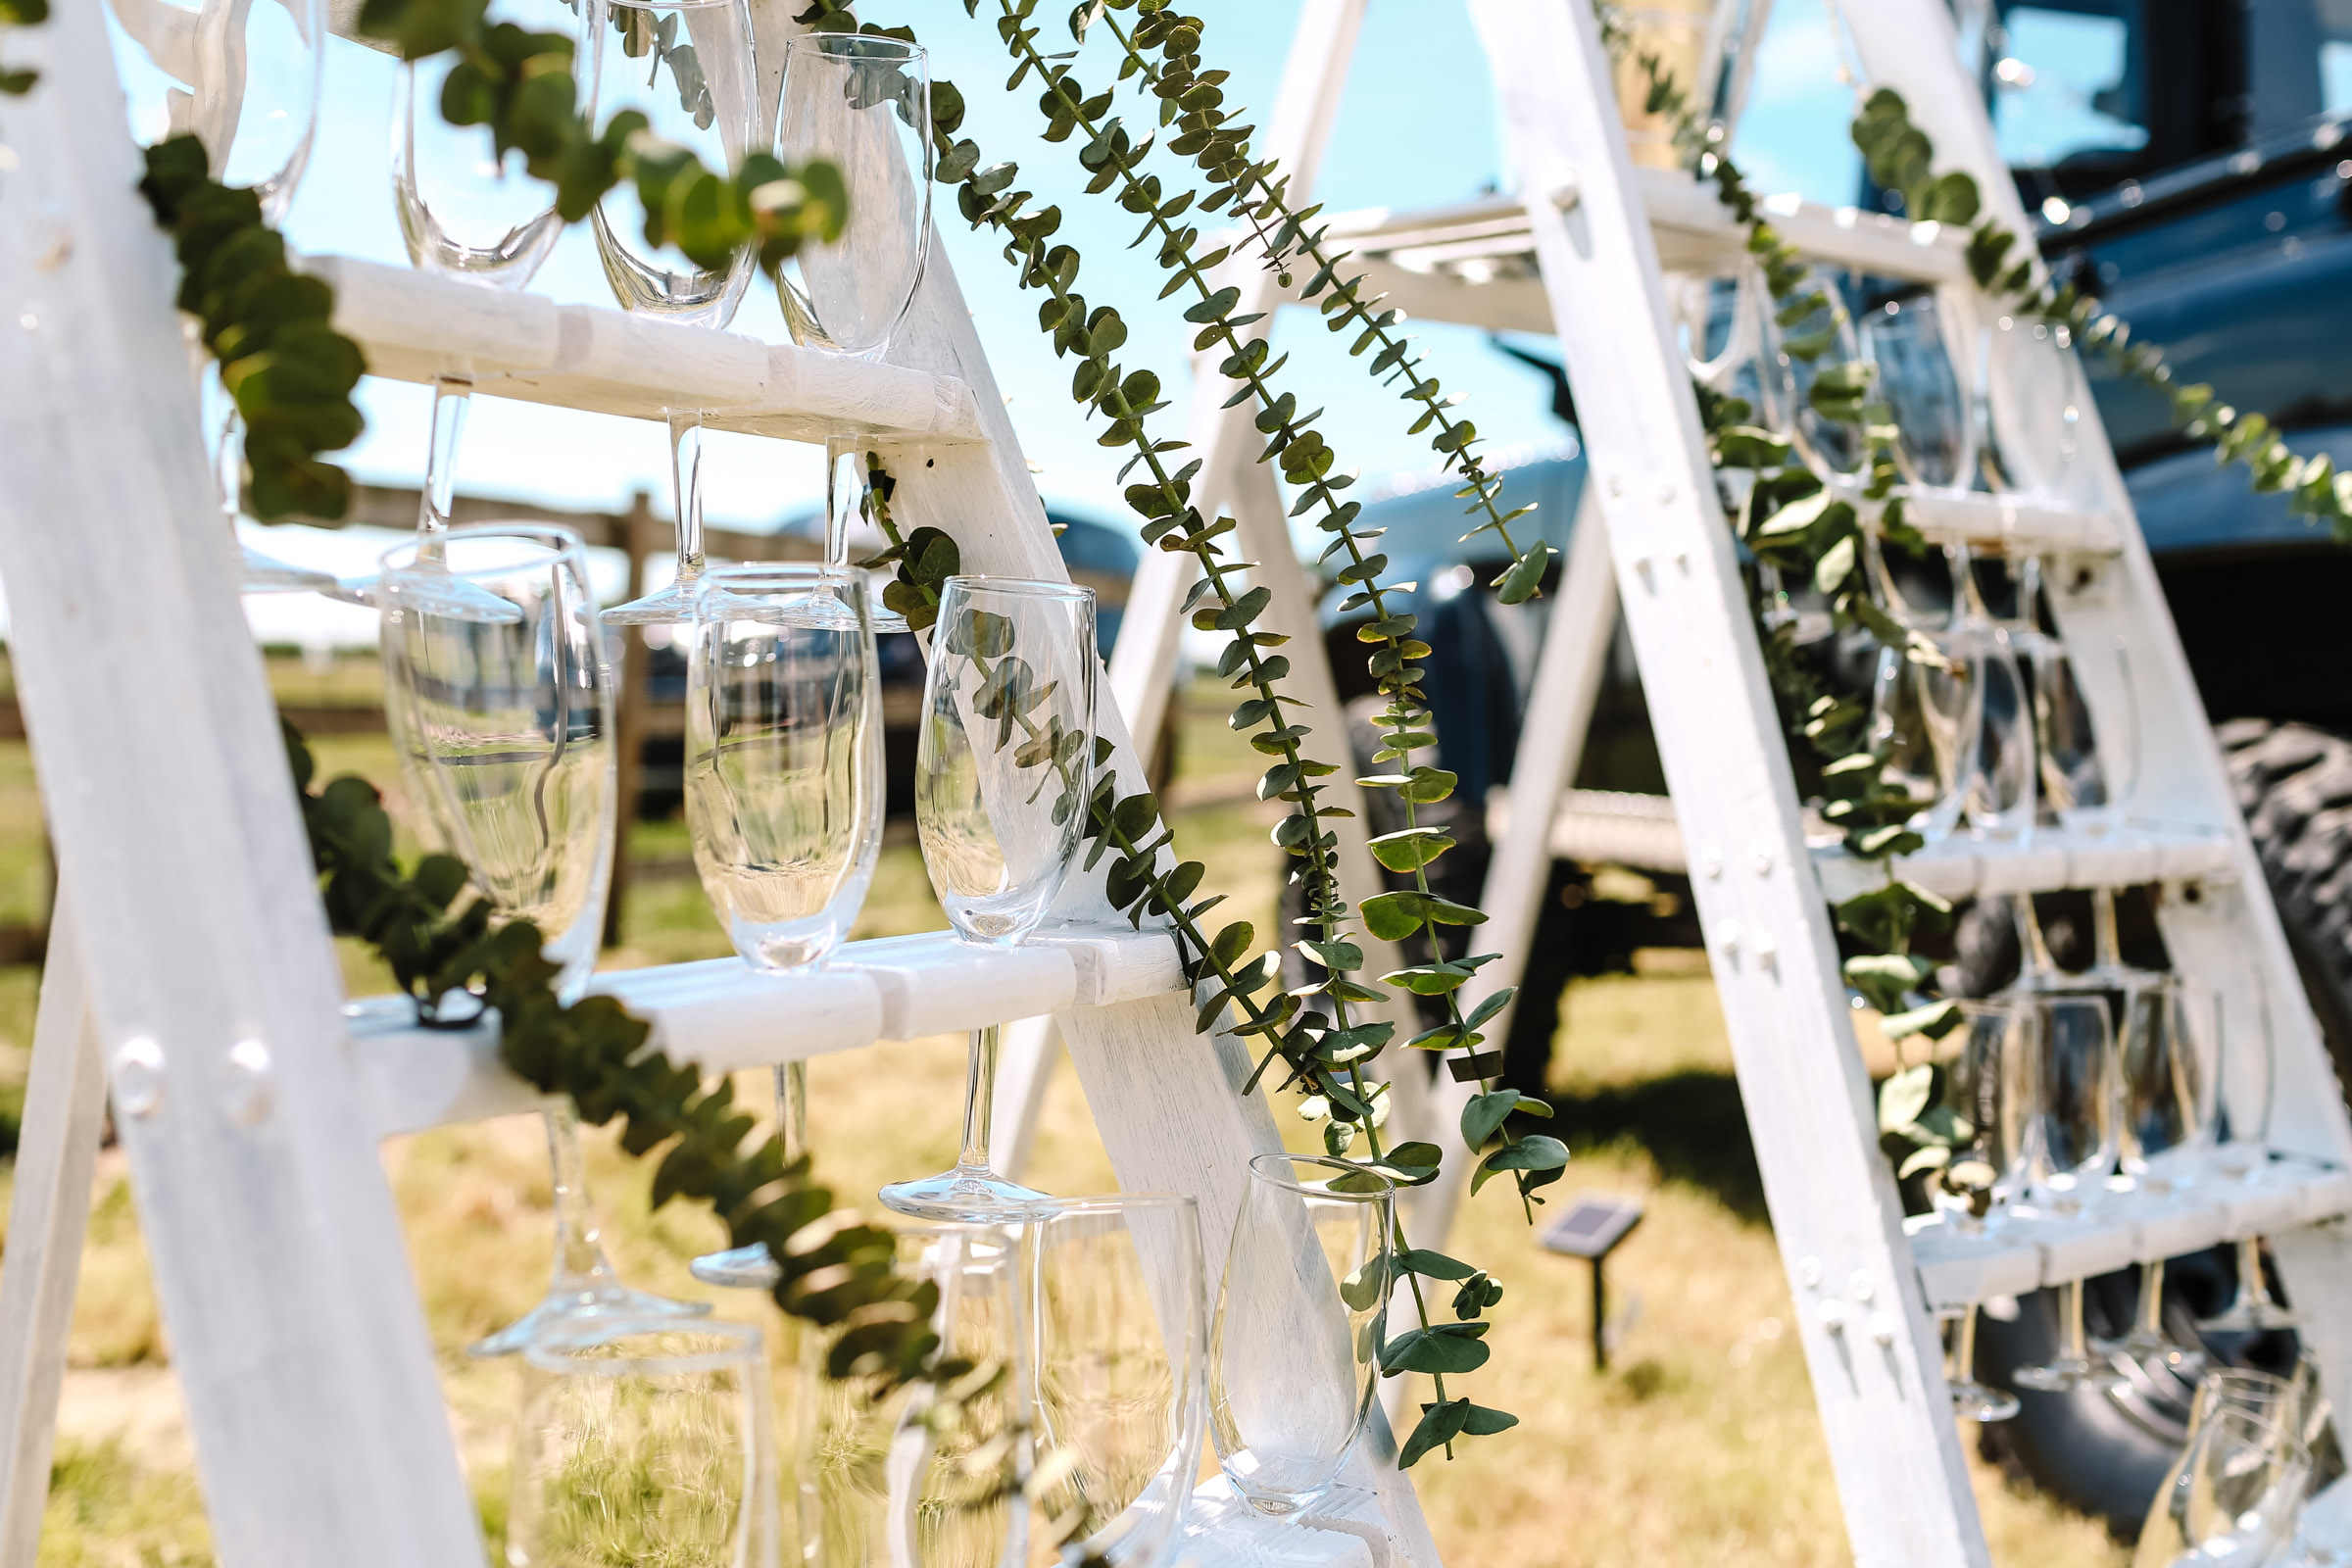 champagne flutes set out on a ladder for guests